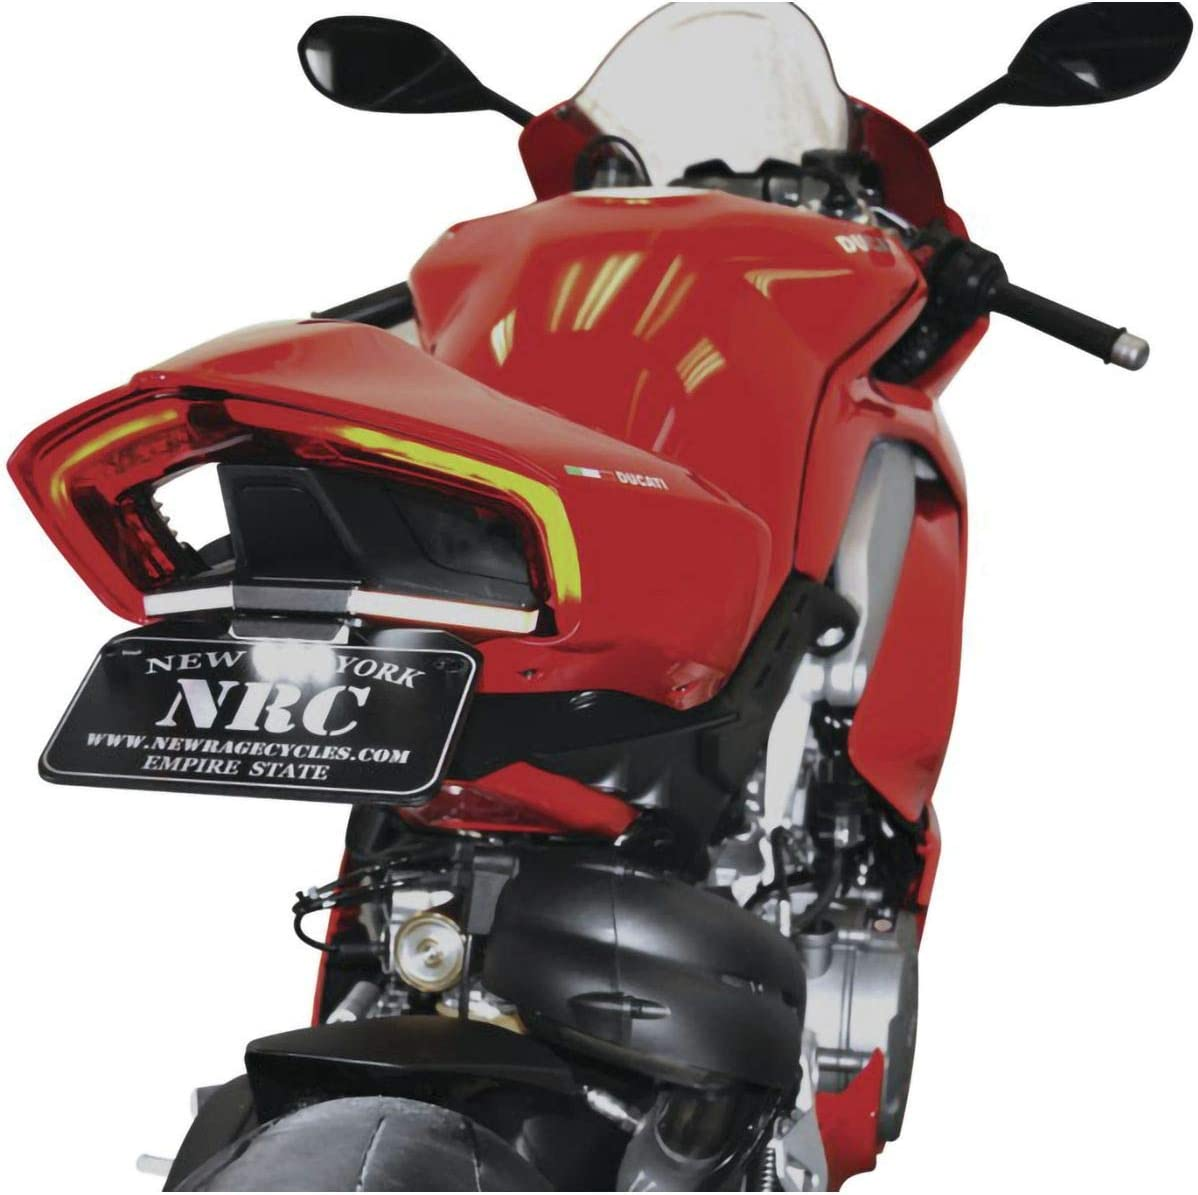 Max 65% OFF Ducati Panigale V4 Fender Eliminator New - Special Campaign Cycles Rage